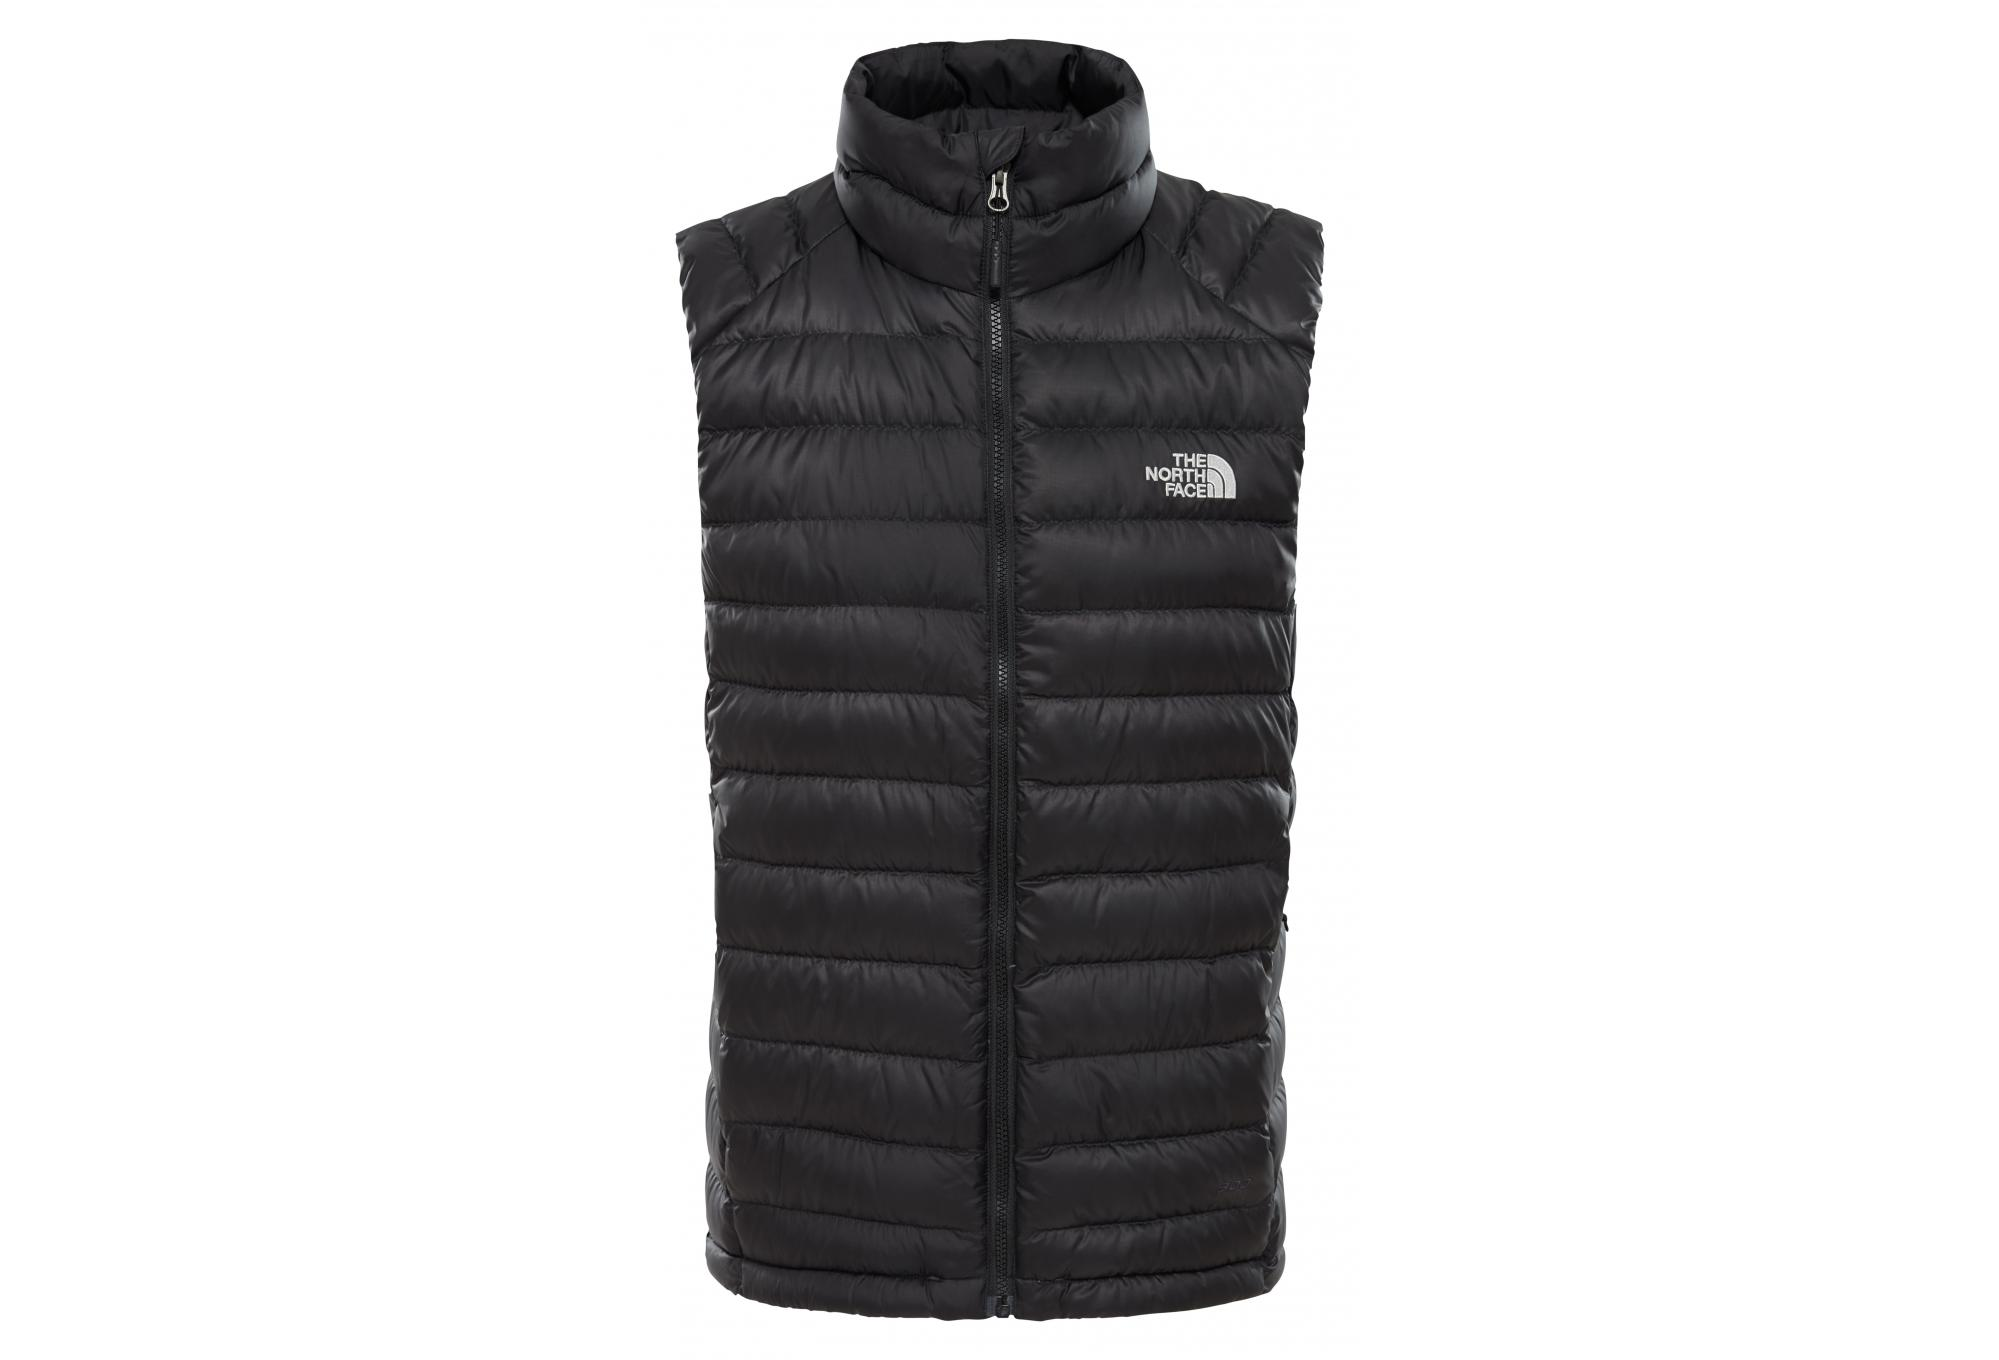 9716798181f Doudoune sans manche The North Face Trevail Noir